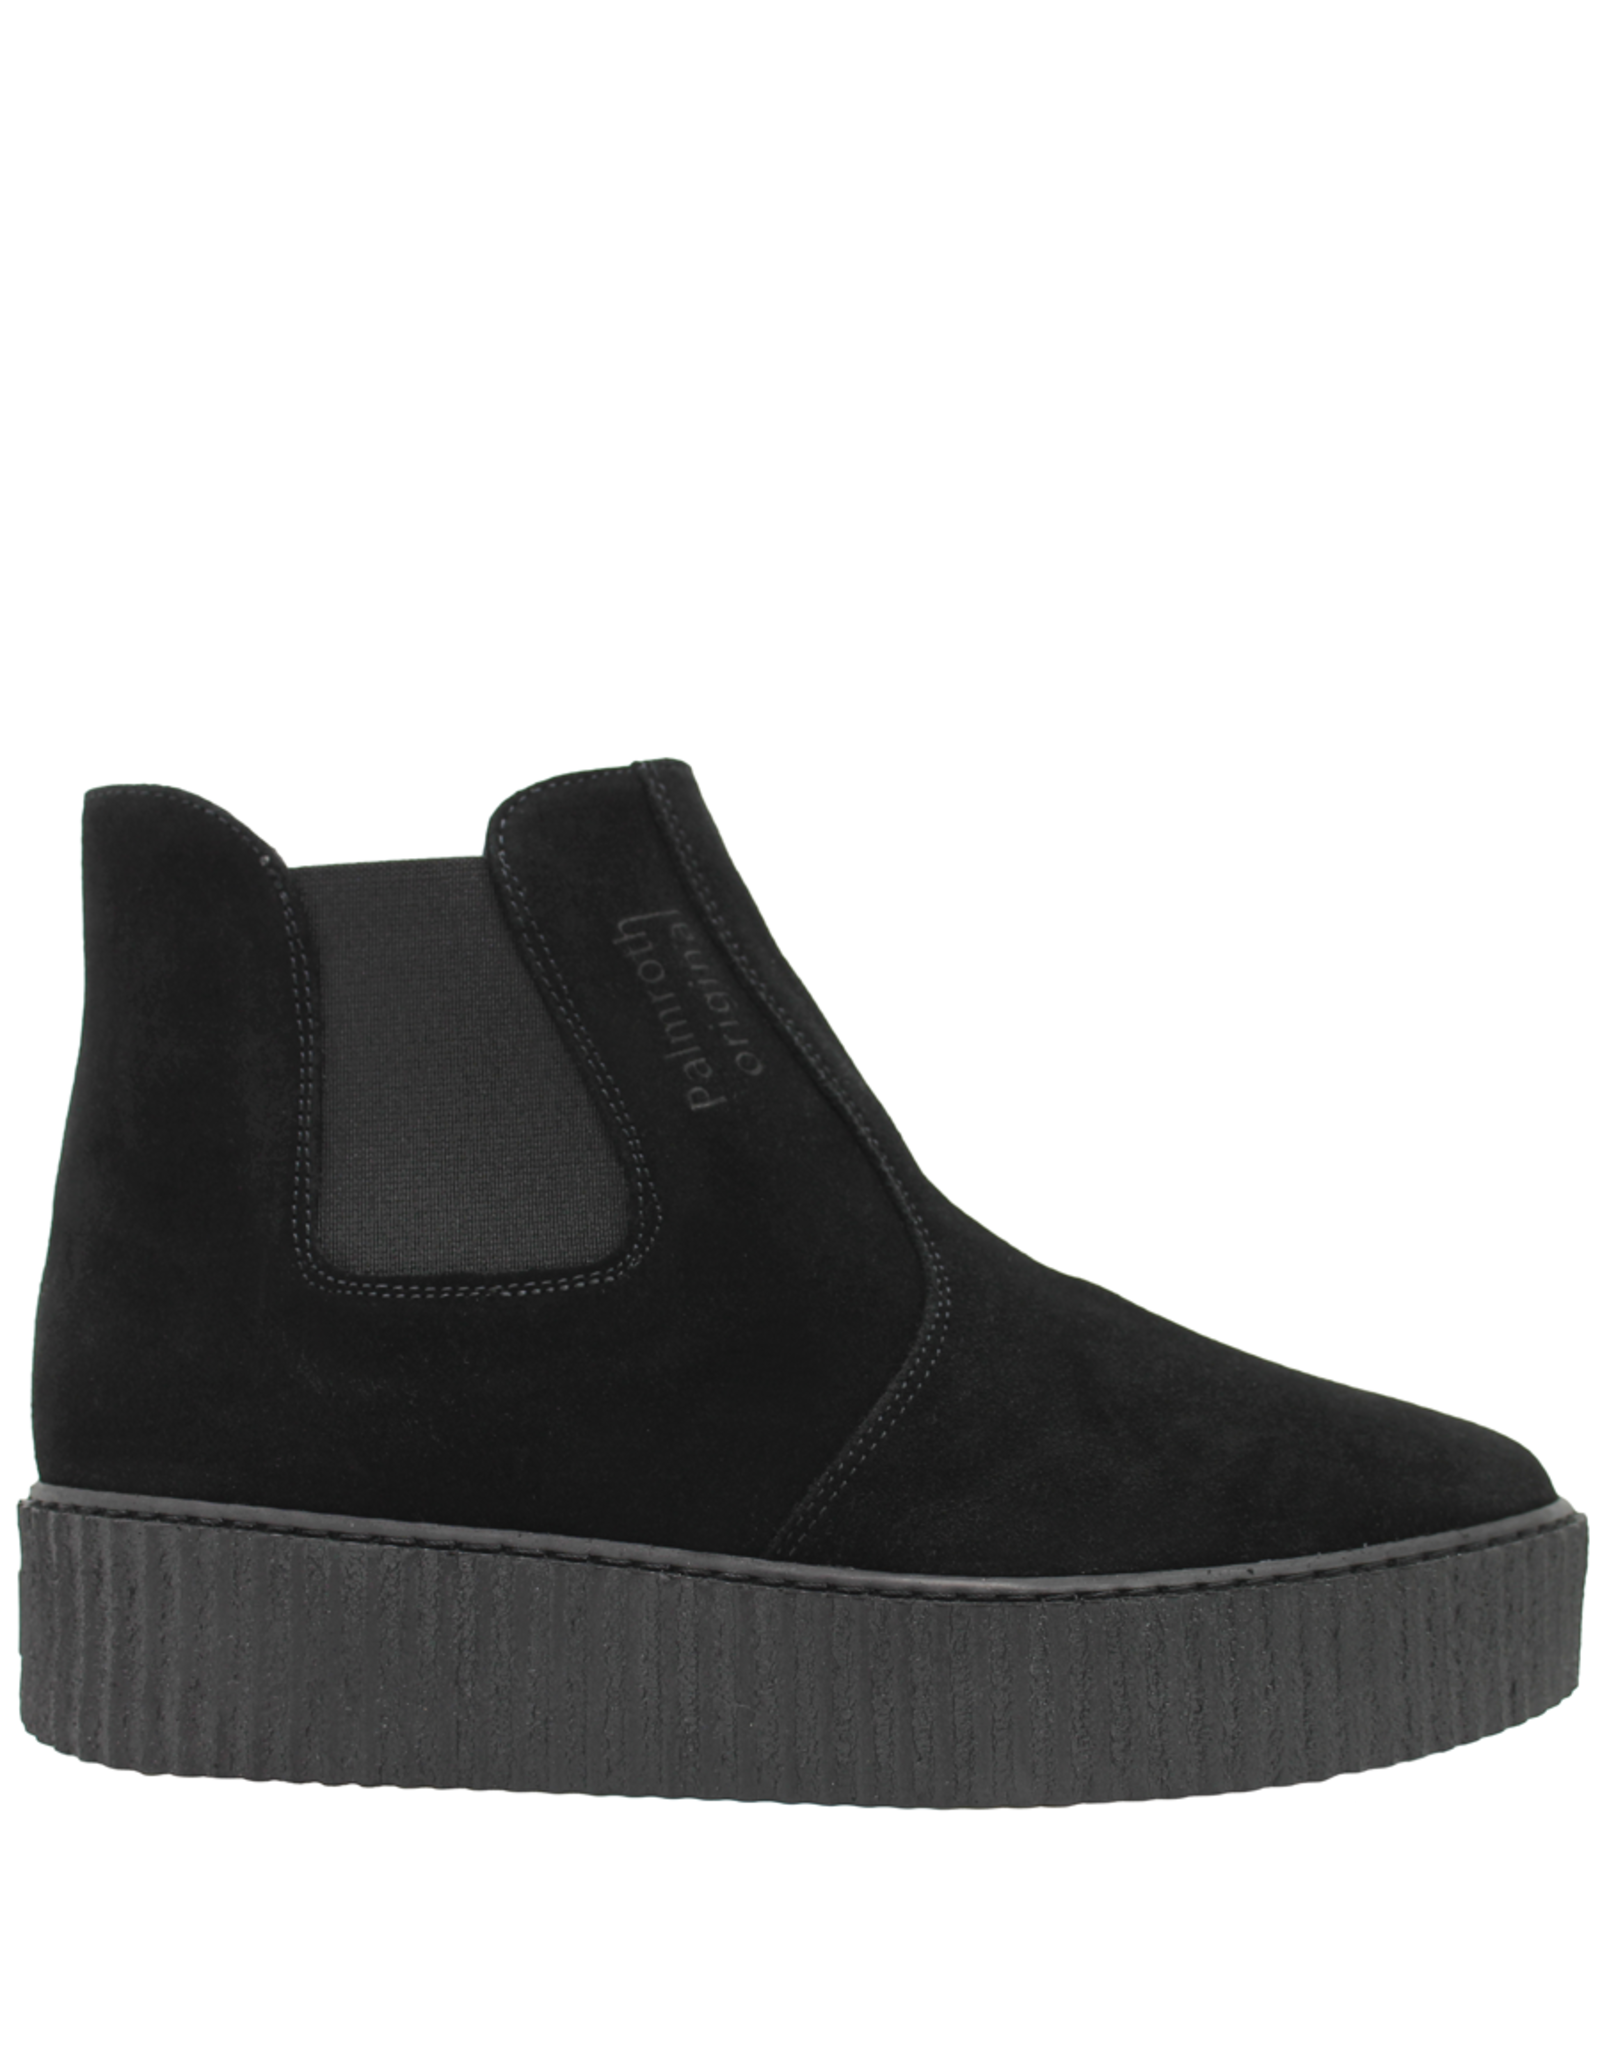 PalmrothOriginal PalmrothOriginal Black Suede Waterproof Chelsea Wedge 8318